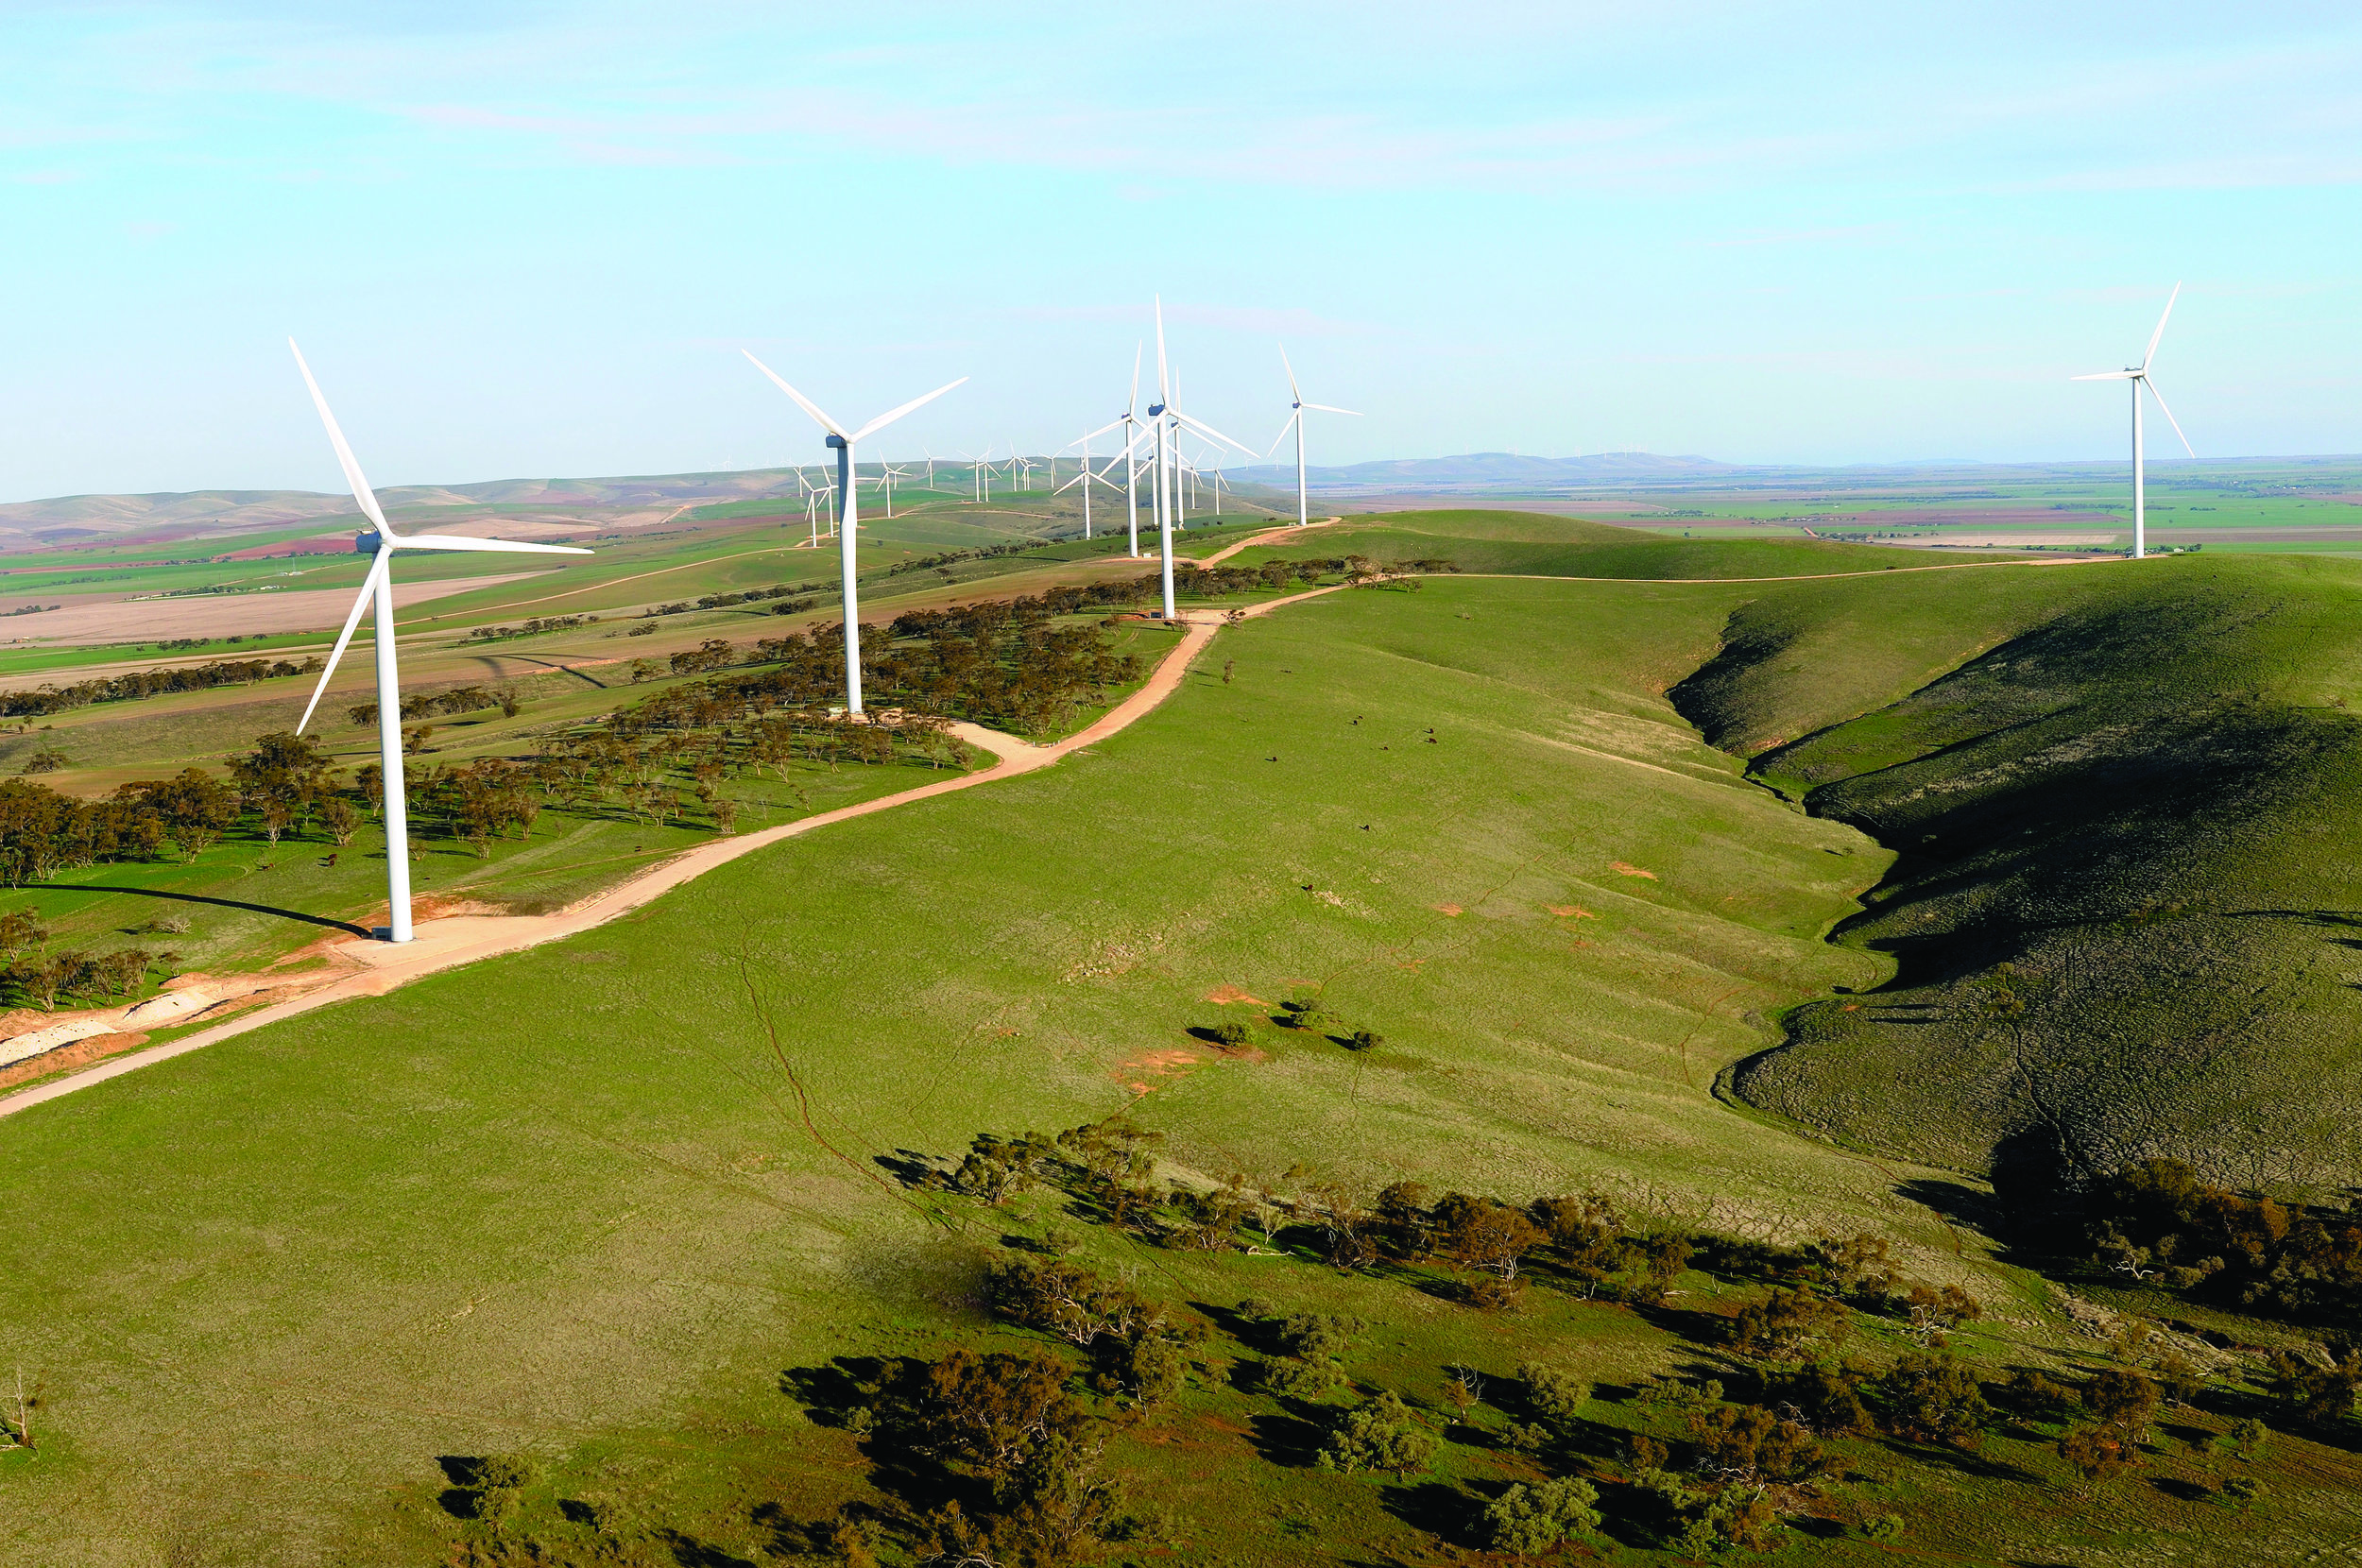 Orora has secured the supply of renewable energy from a number of sources, including from Clements Gap Wind Farm.